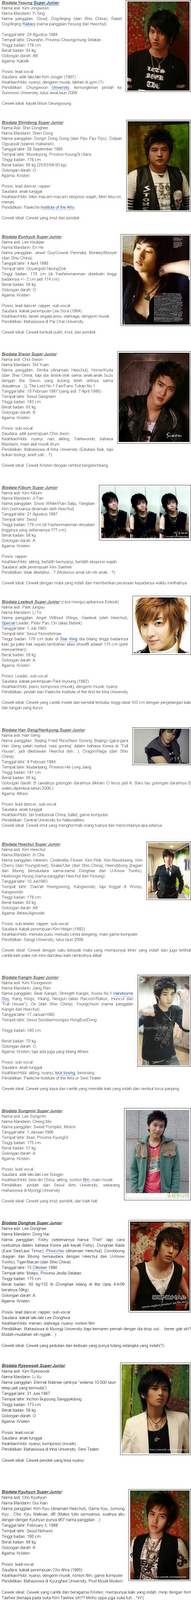 Biodata Profil Super Junior